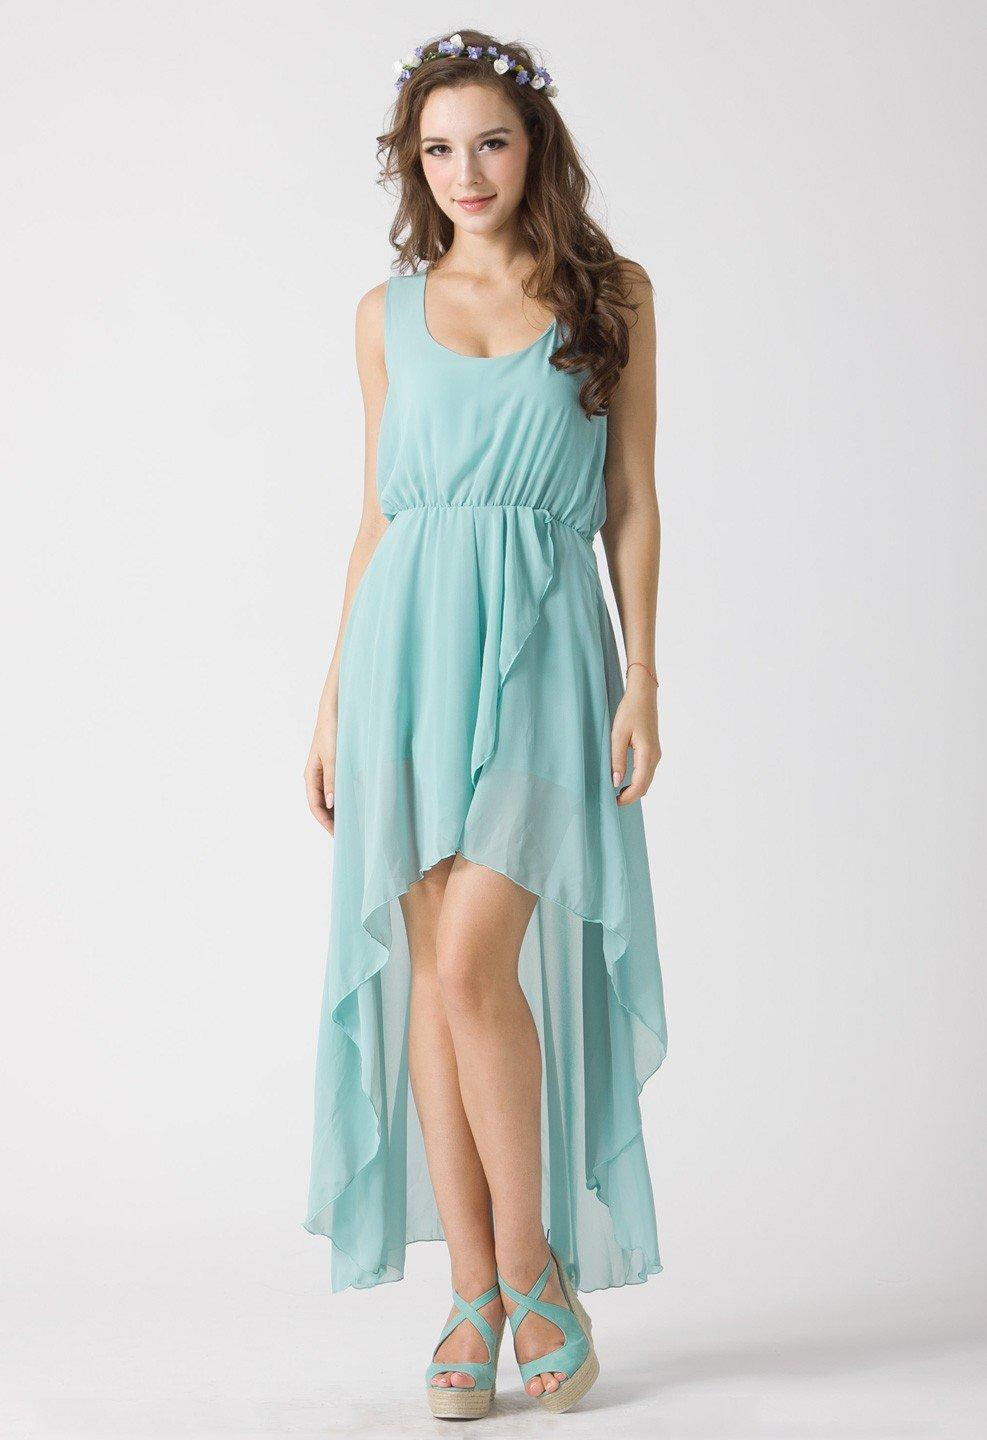 Turquoise Asymmetric High-Low Sleeveless Dress